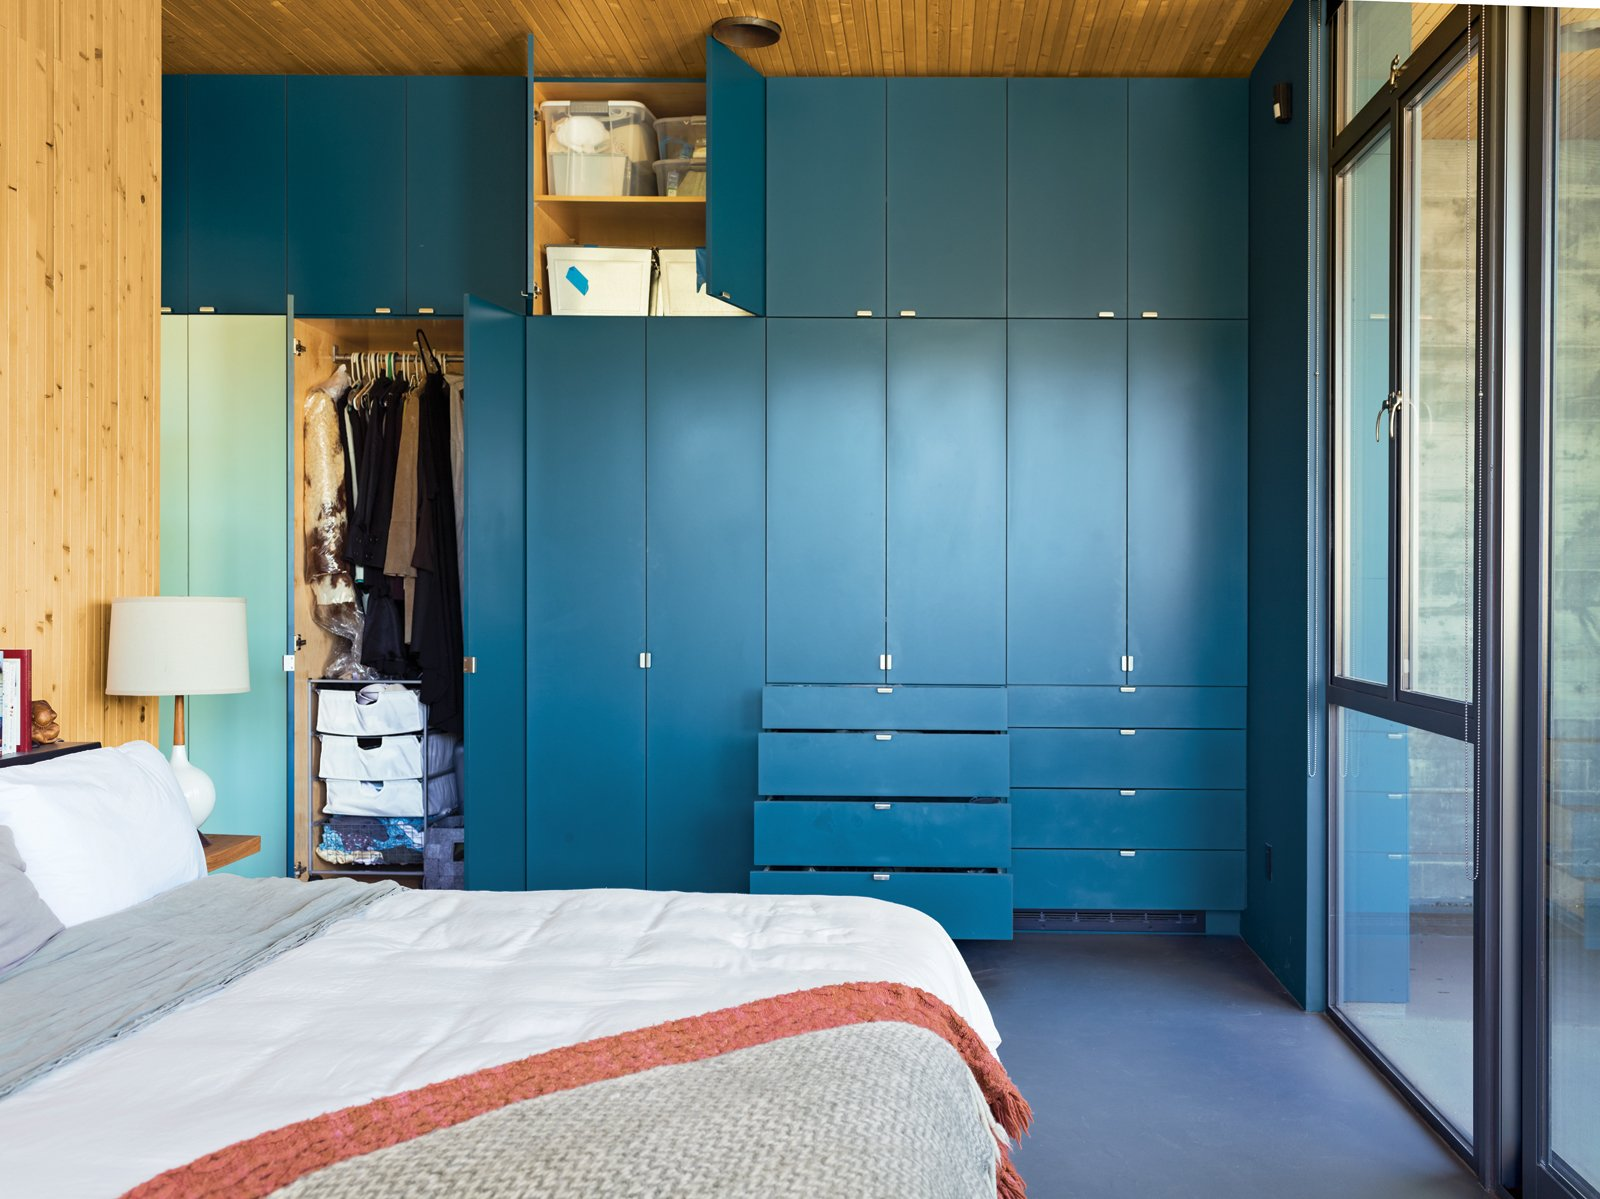 "Bedroom and Storage In such a small space ""you have to organize, and every piece takes a decision,"" says resident Heidi Wright. The couple keep things they use less frequently, like guest bedding, in the higher cabinets.  Photos from Malibu Canyon House with a View"